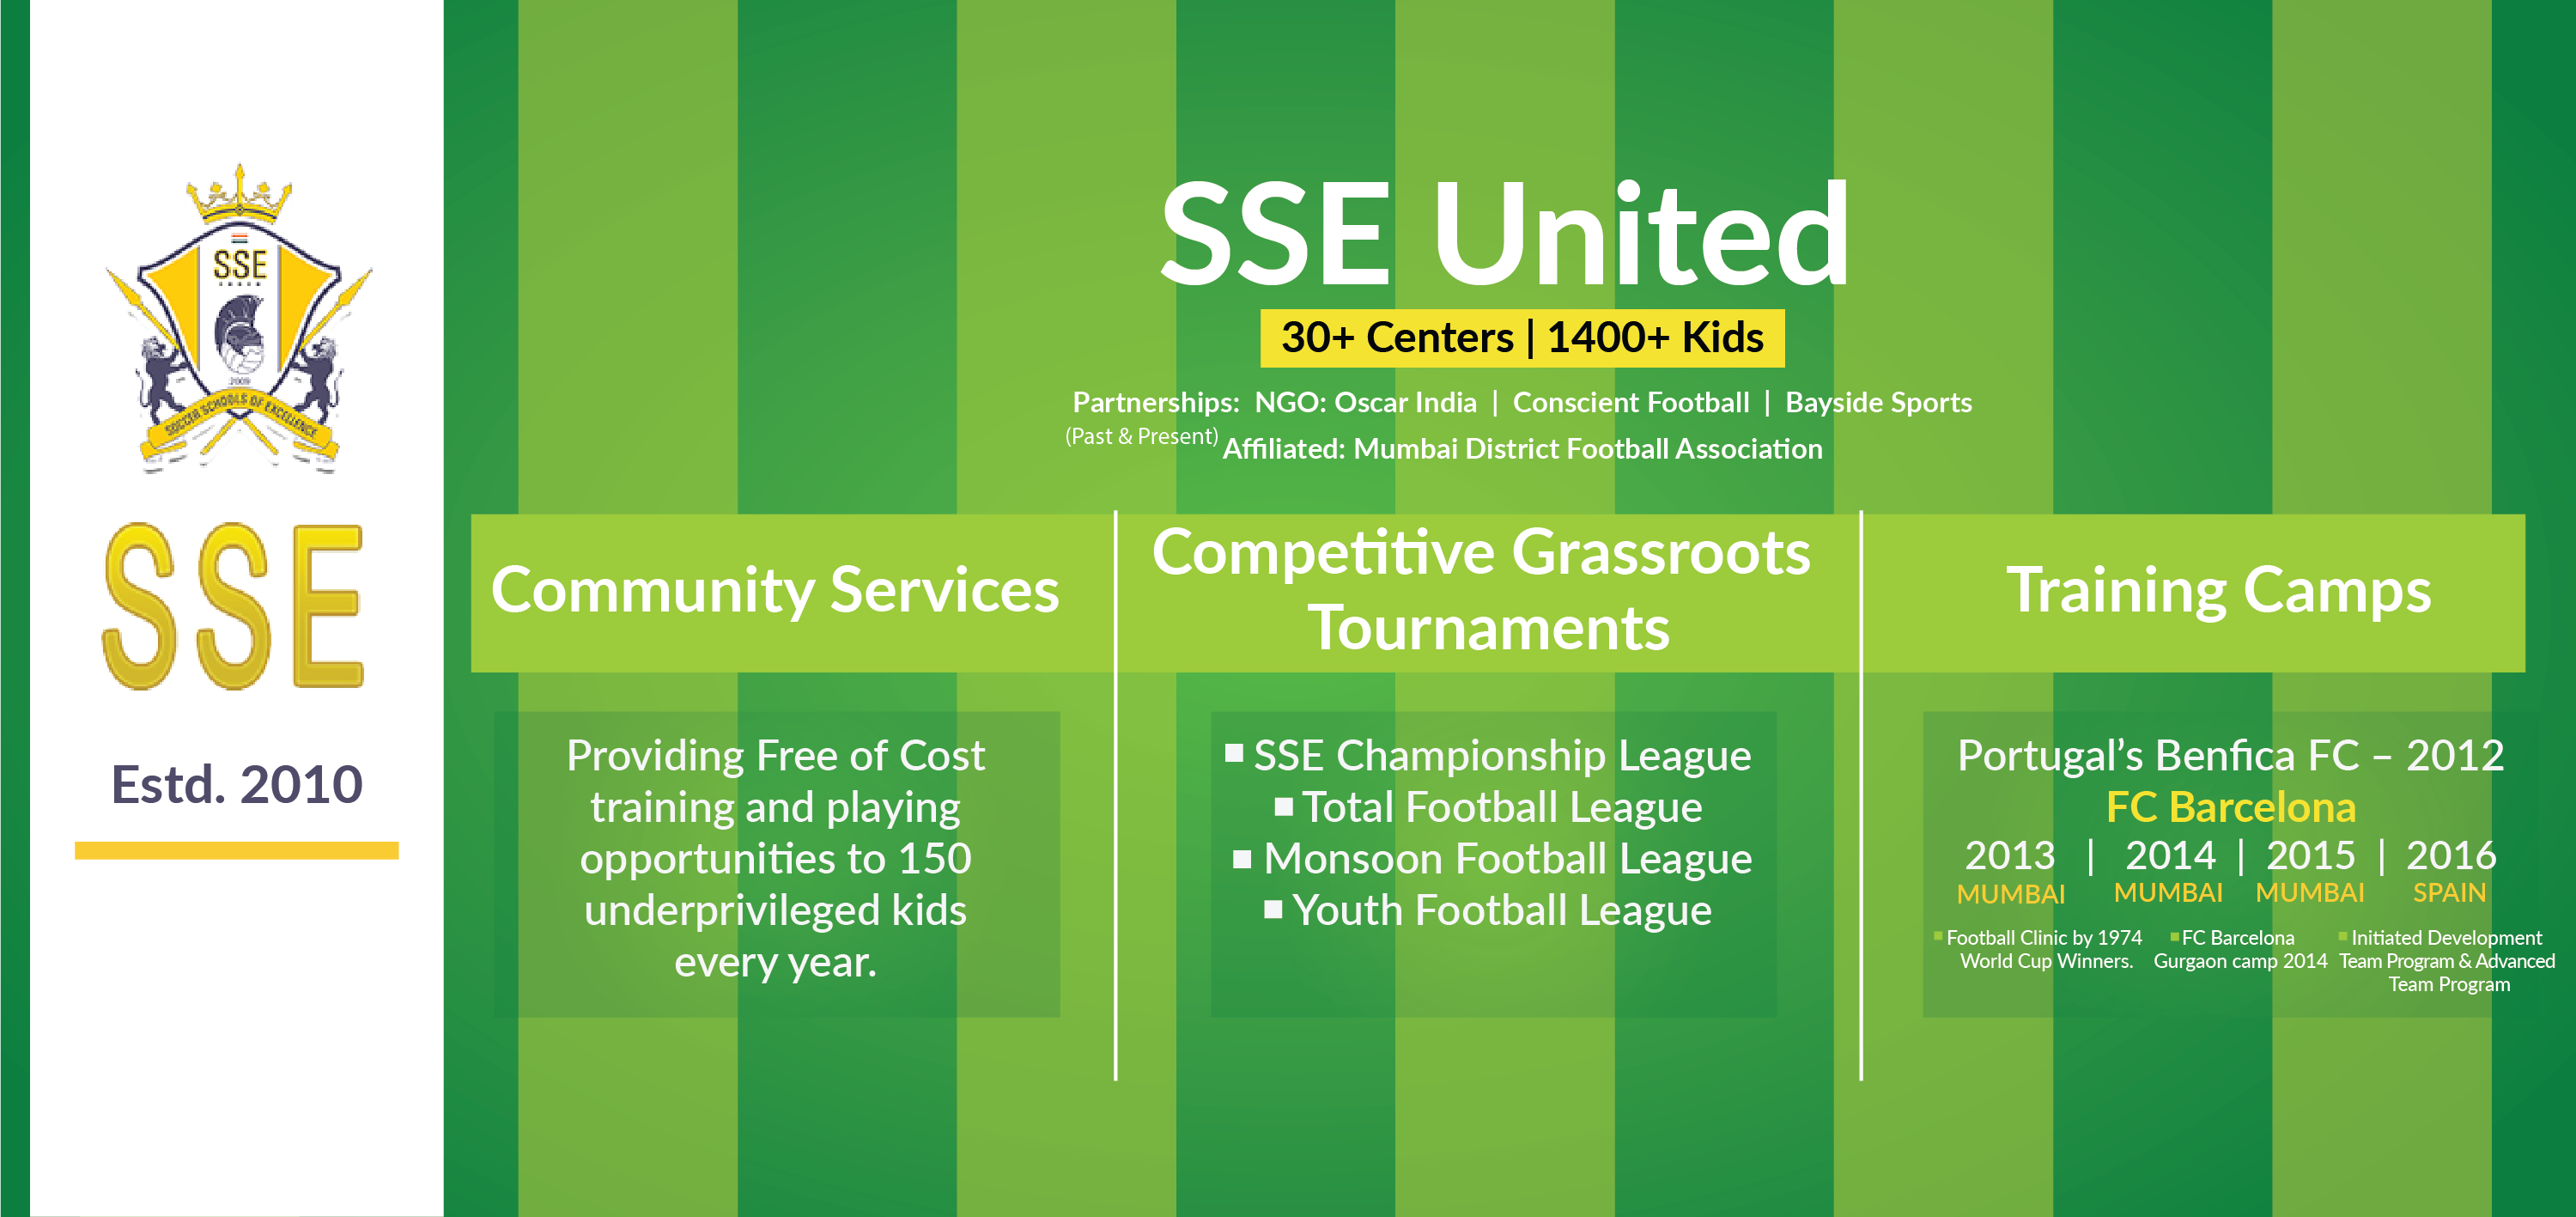 Soccer Schools of Excellence